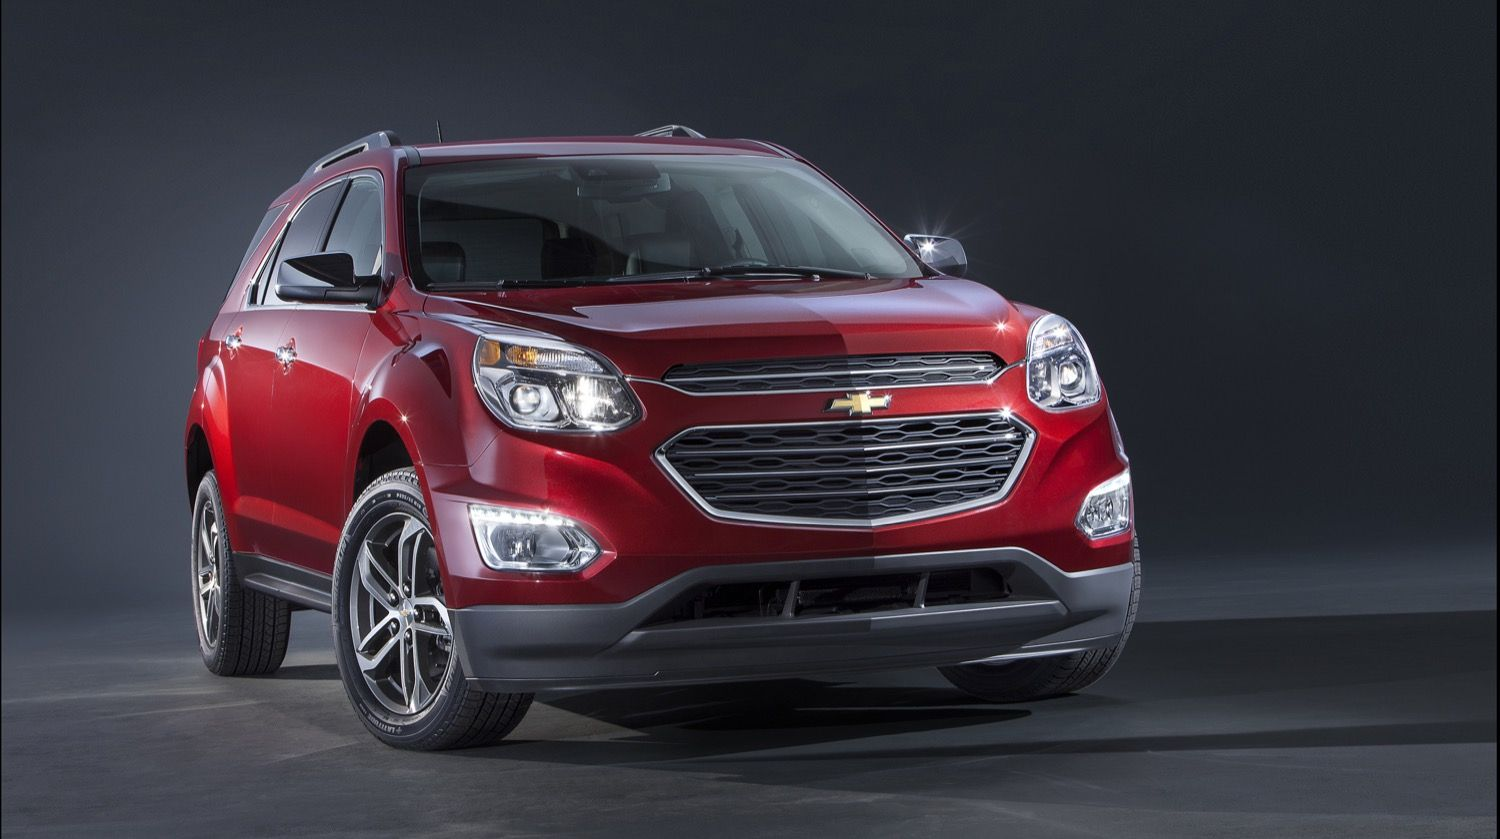 2017 Chevy Equinox Specs Price And Release Date The New Vehicle Like Is Also Very Recommended To Have It Will Be Ful